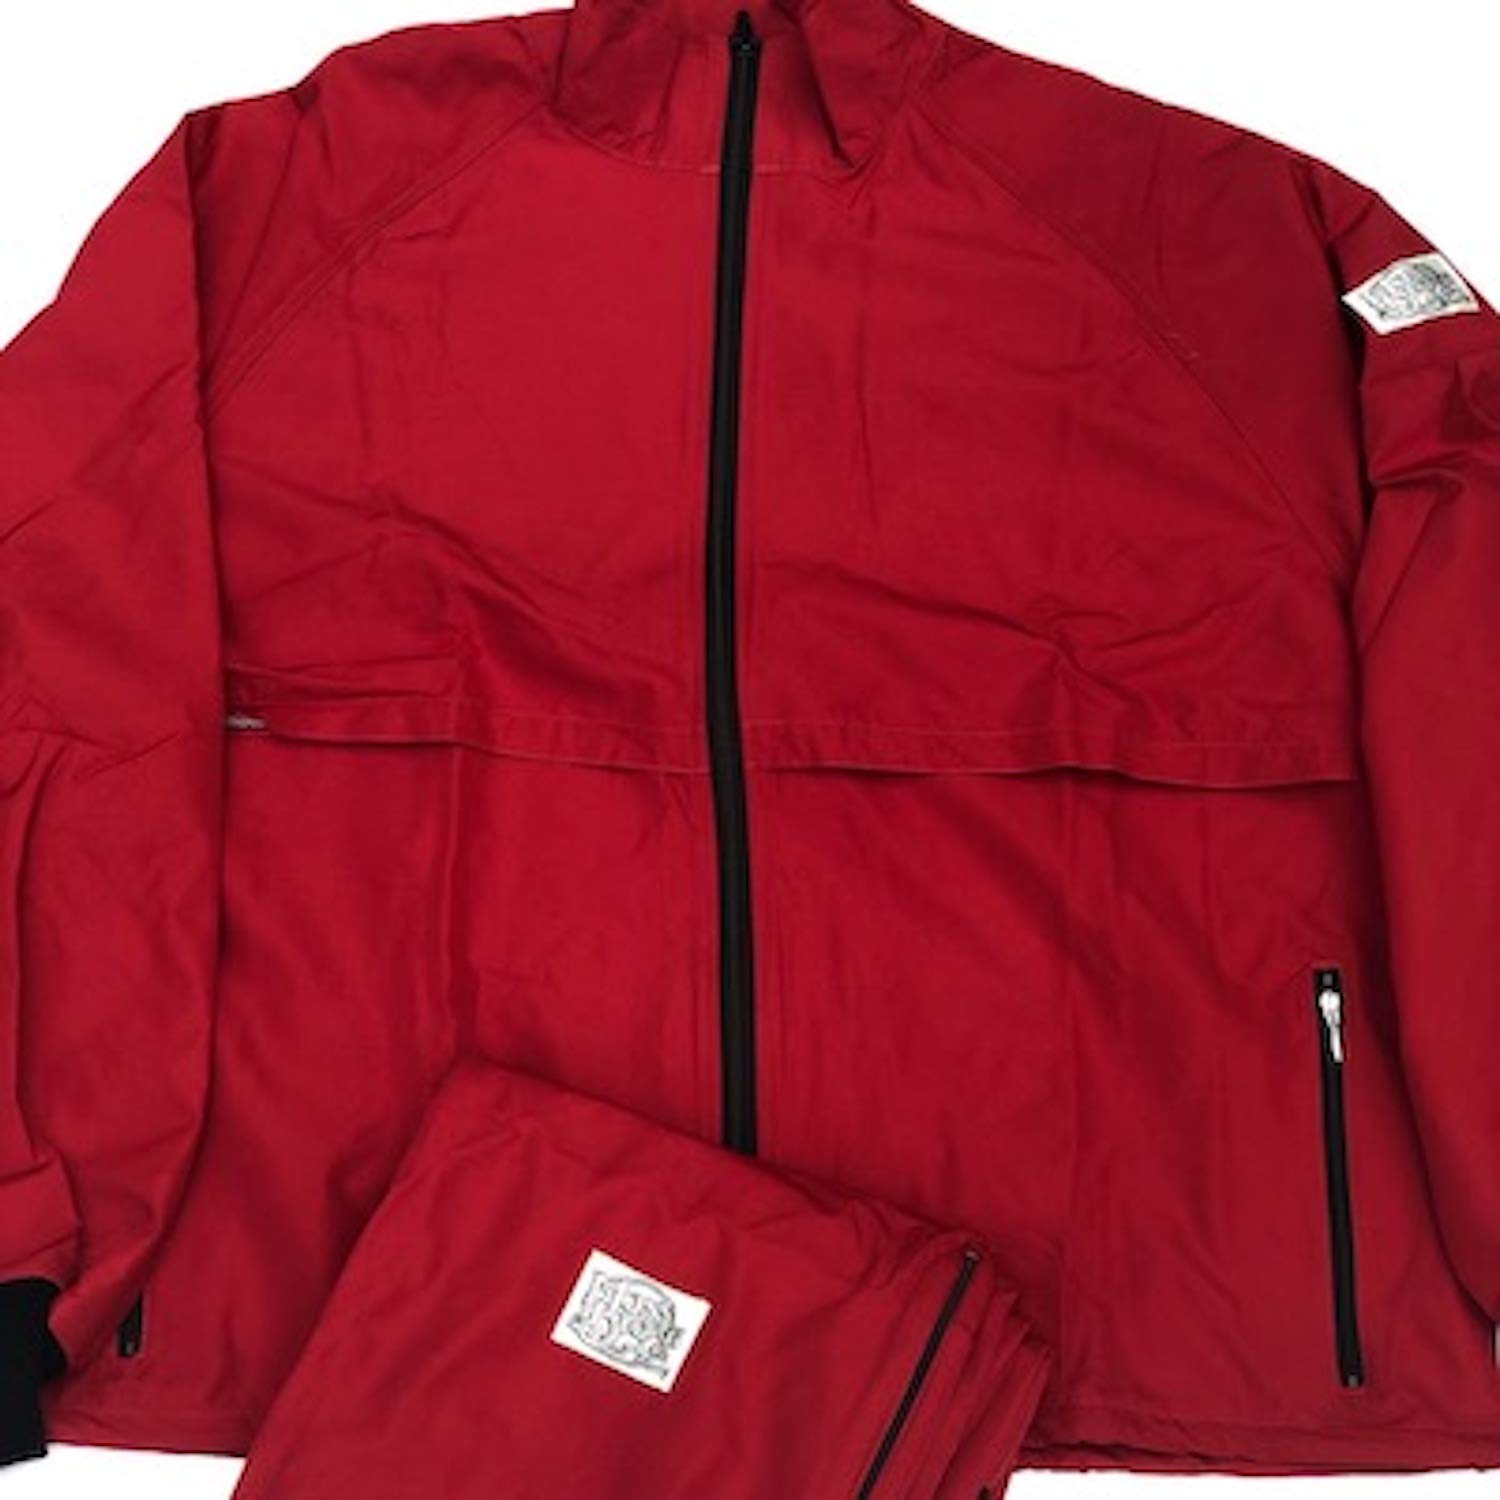 Moss Brown & Co. Bright Colors, 2-Layer Moss-TEX, Waterproof, Breathable, Big & Tall, Track Suits. Chili Pepper Red -3X by Moss Brown & Co.